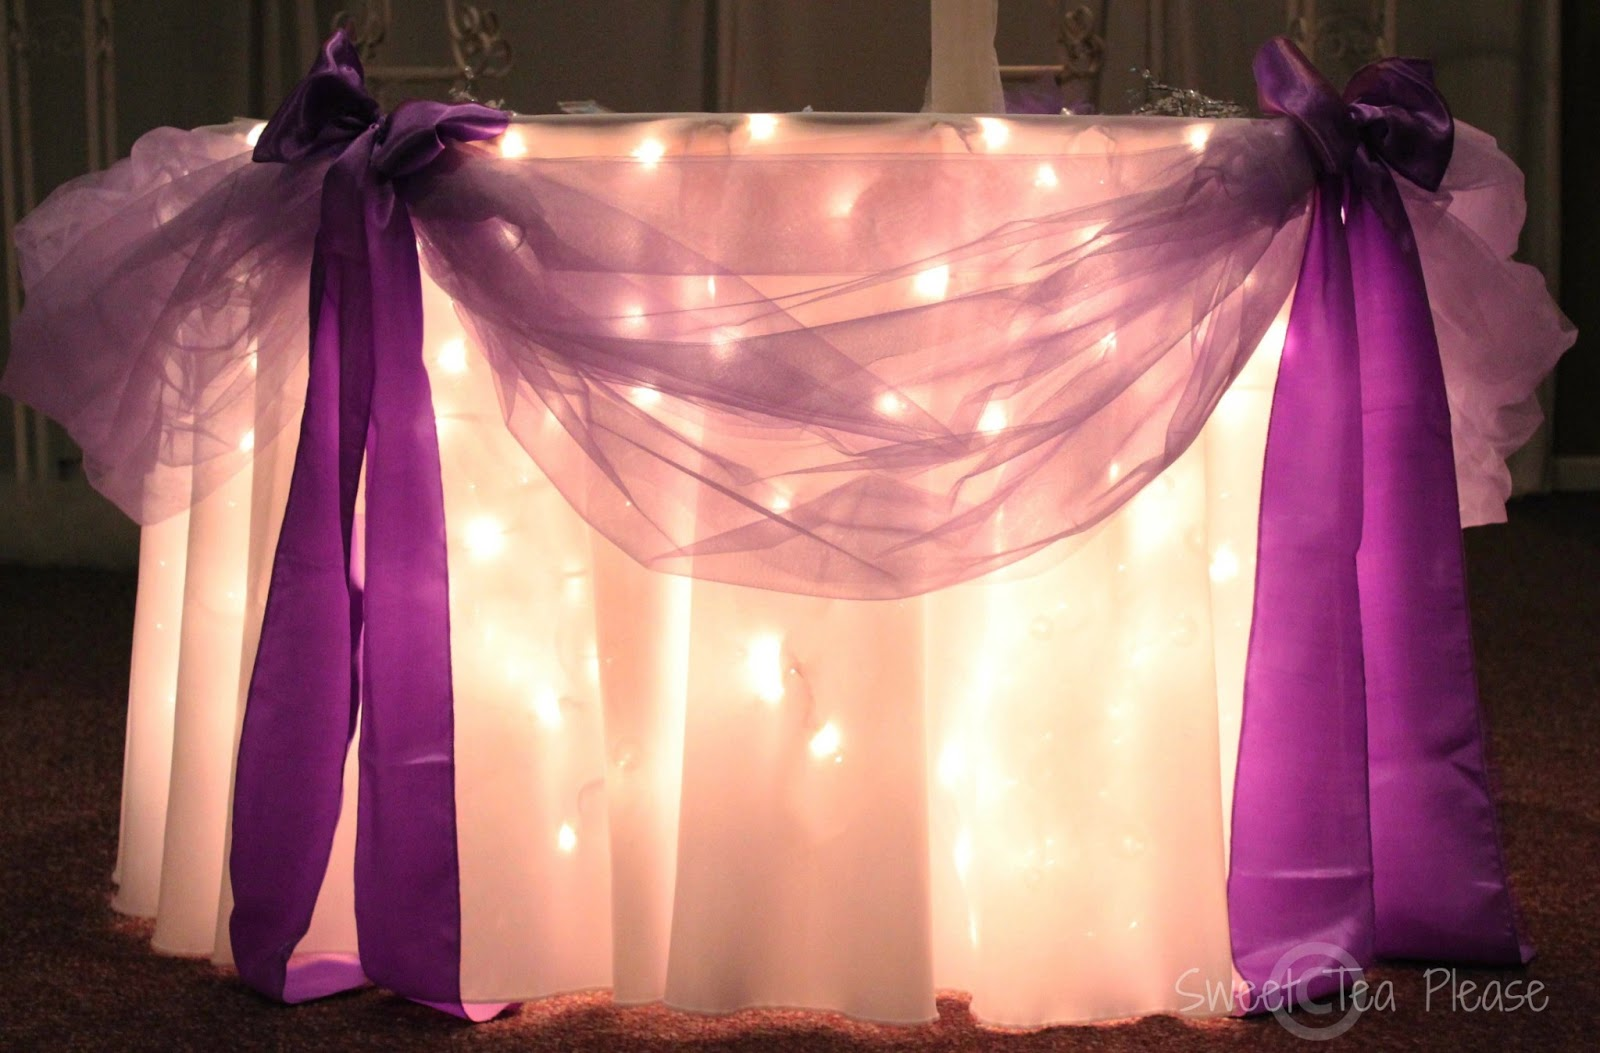 Andrea Howard Blog: Decorating A Cake Table With Lights And Tulle   A  Tutorial